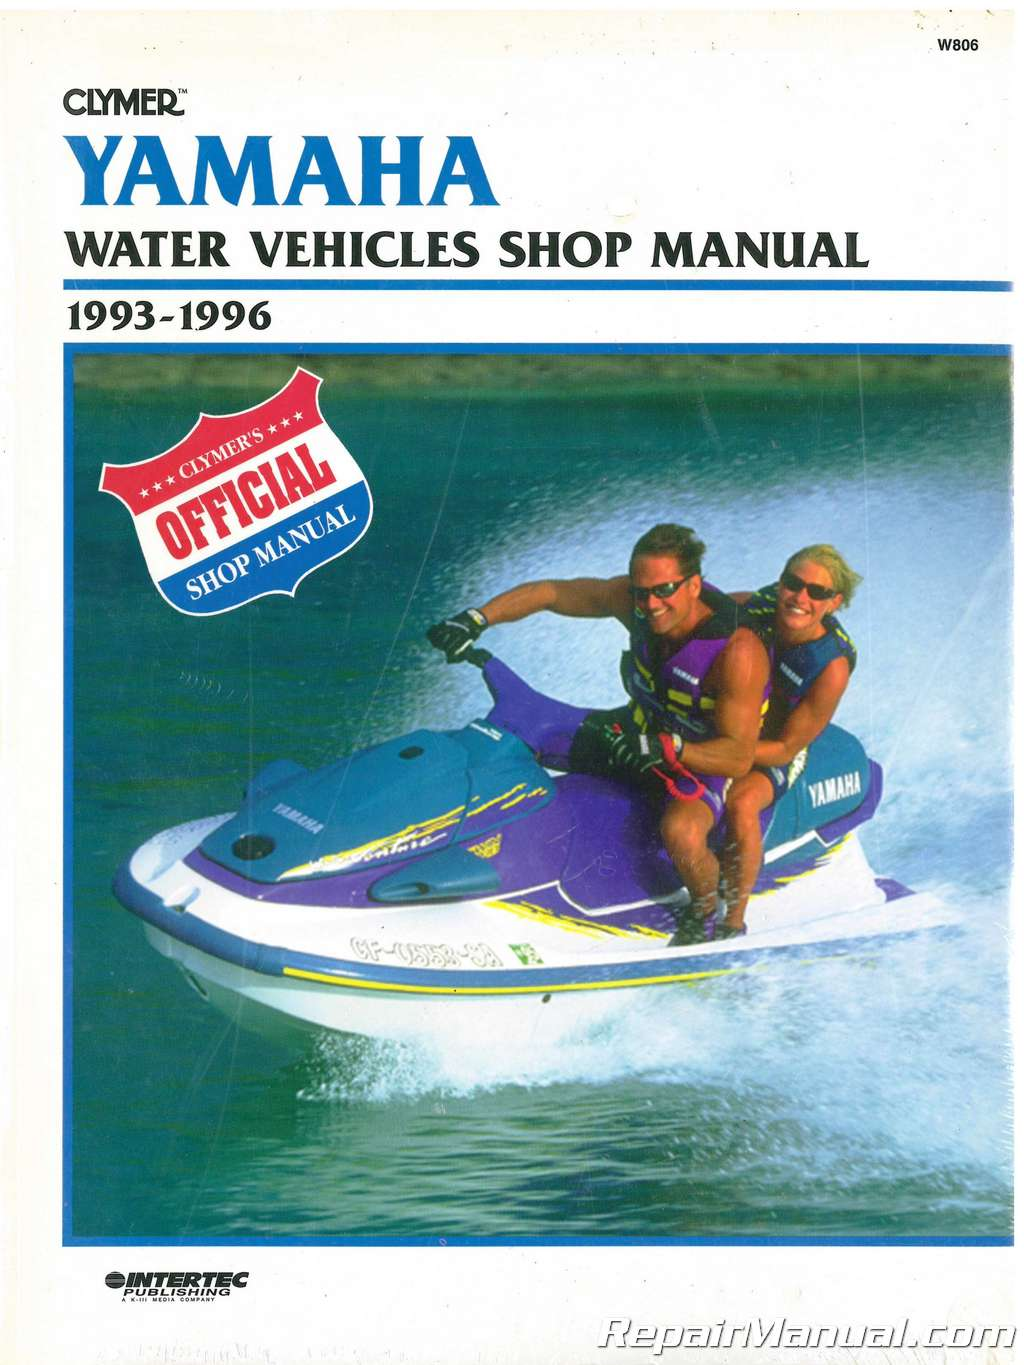 USED 1993-1996 Yamaha Waverunner Clymer Personal Watercraft Service Manual